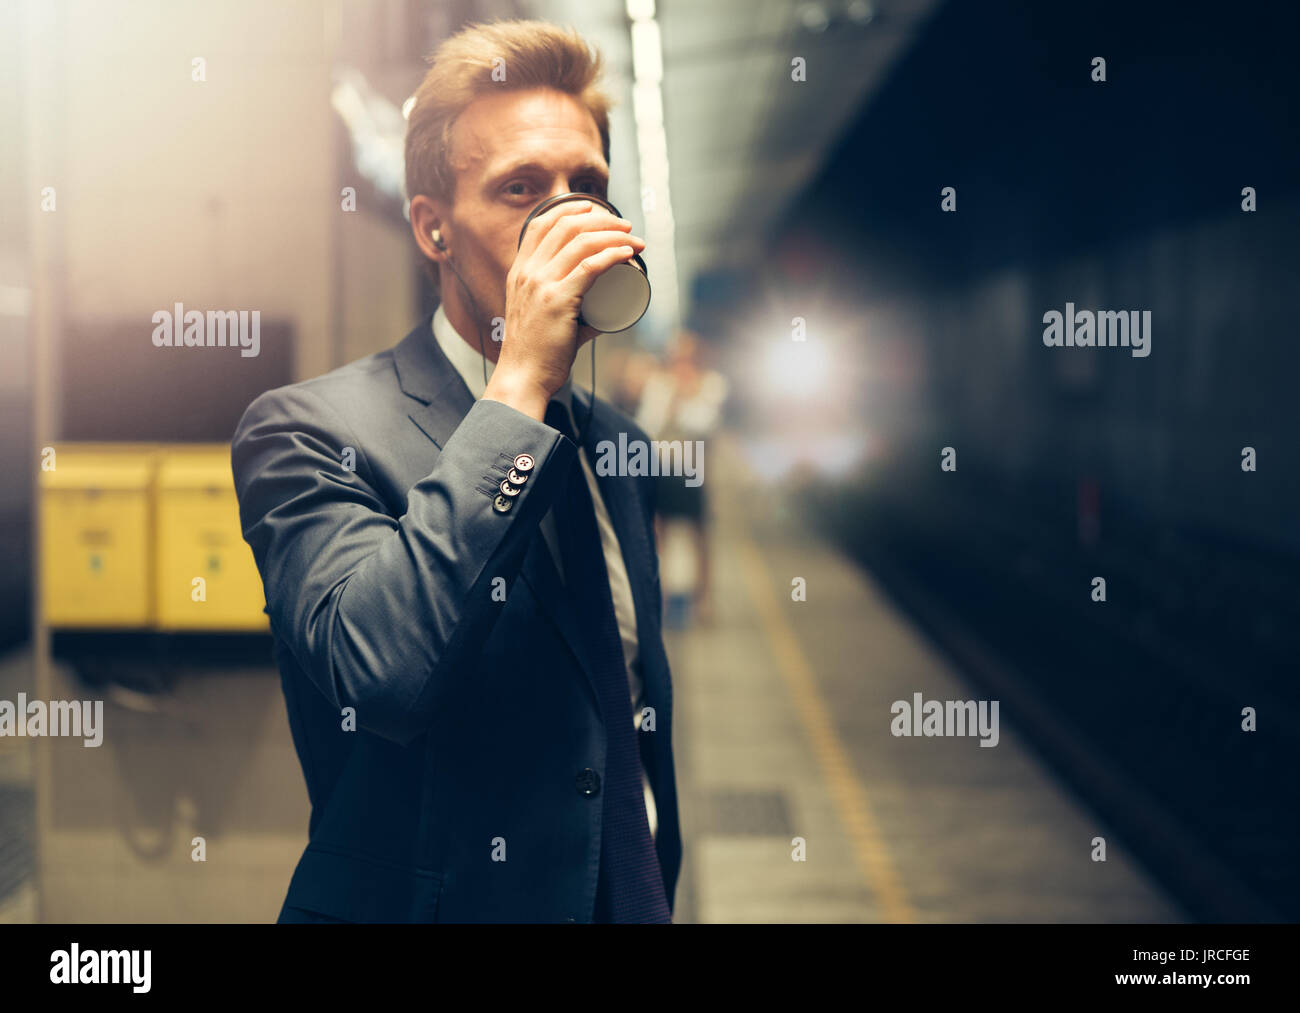 Young businessman drinking a coffee and listening to music on his cellphone while standing on a subway platform during his morning commute - Stock Image